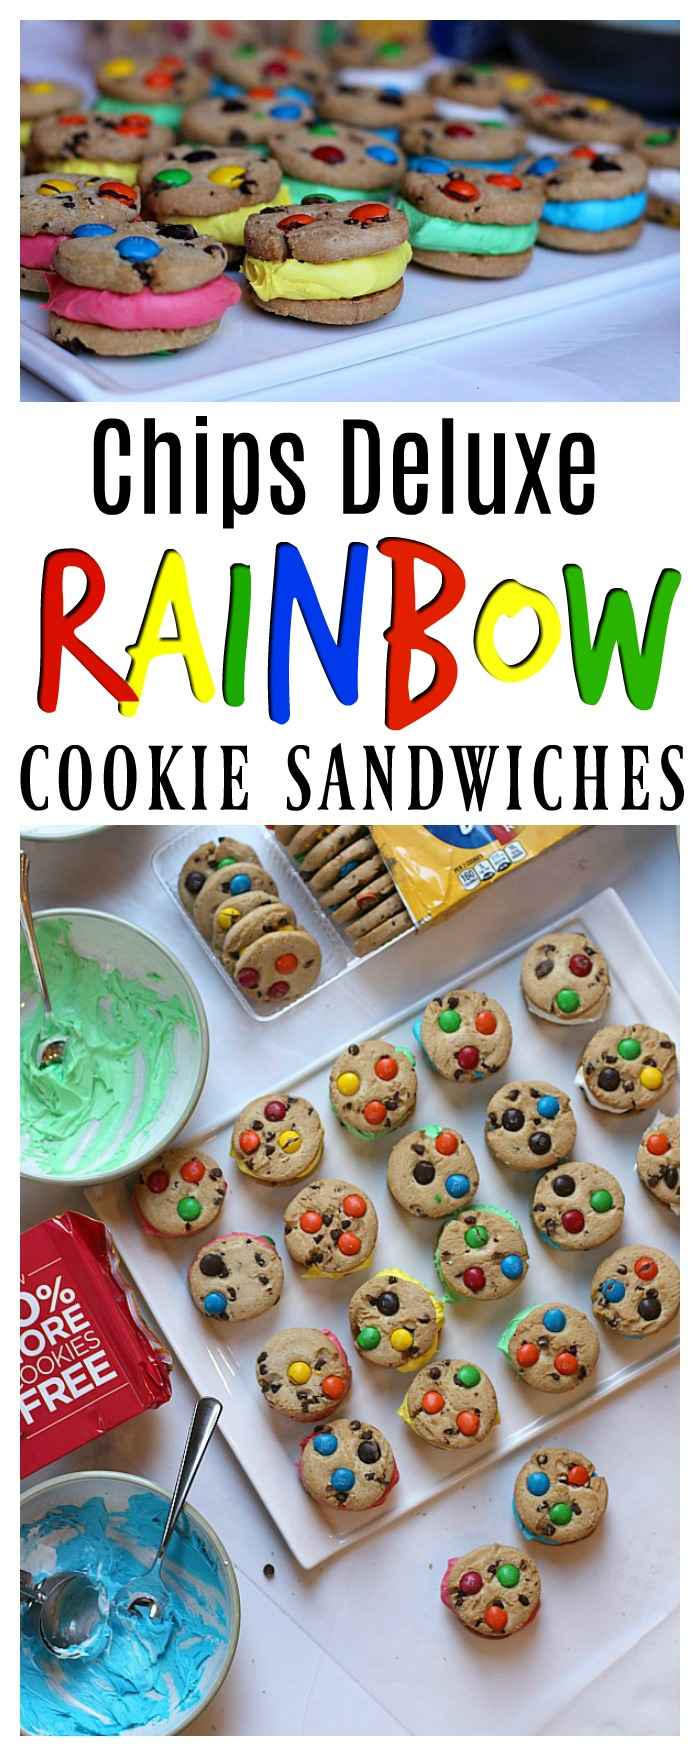 Chips Deluxe Rainbow Cookie Sandwiches